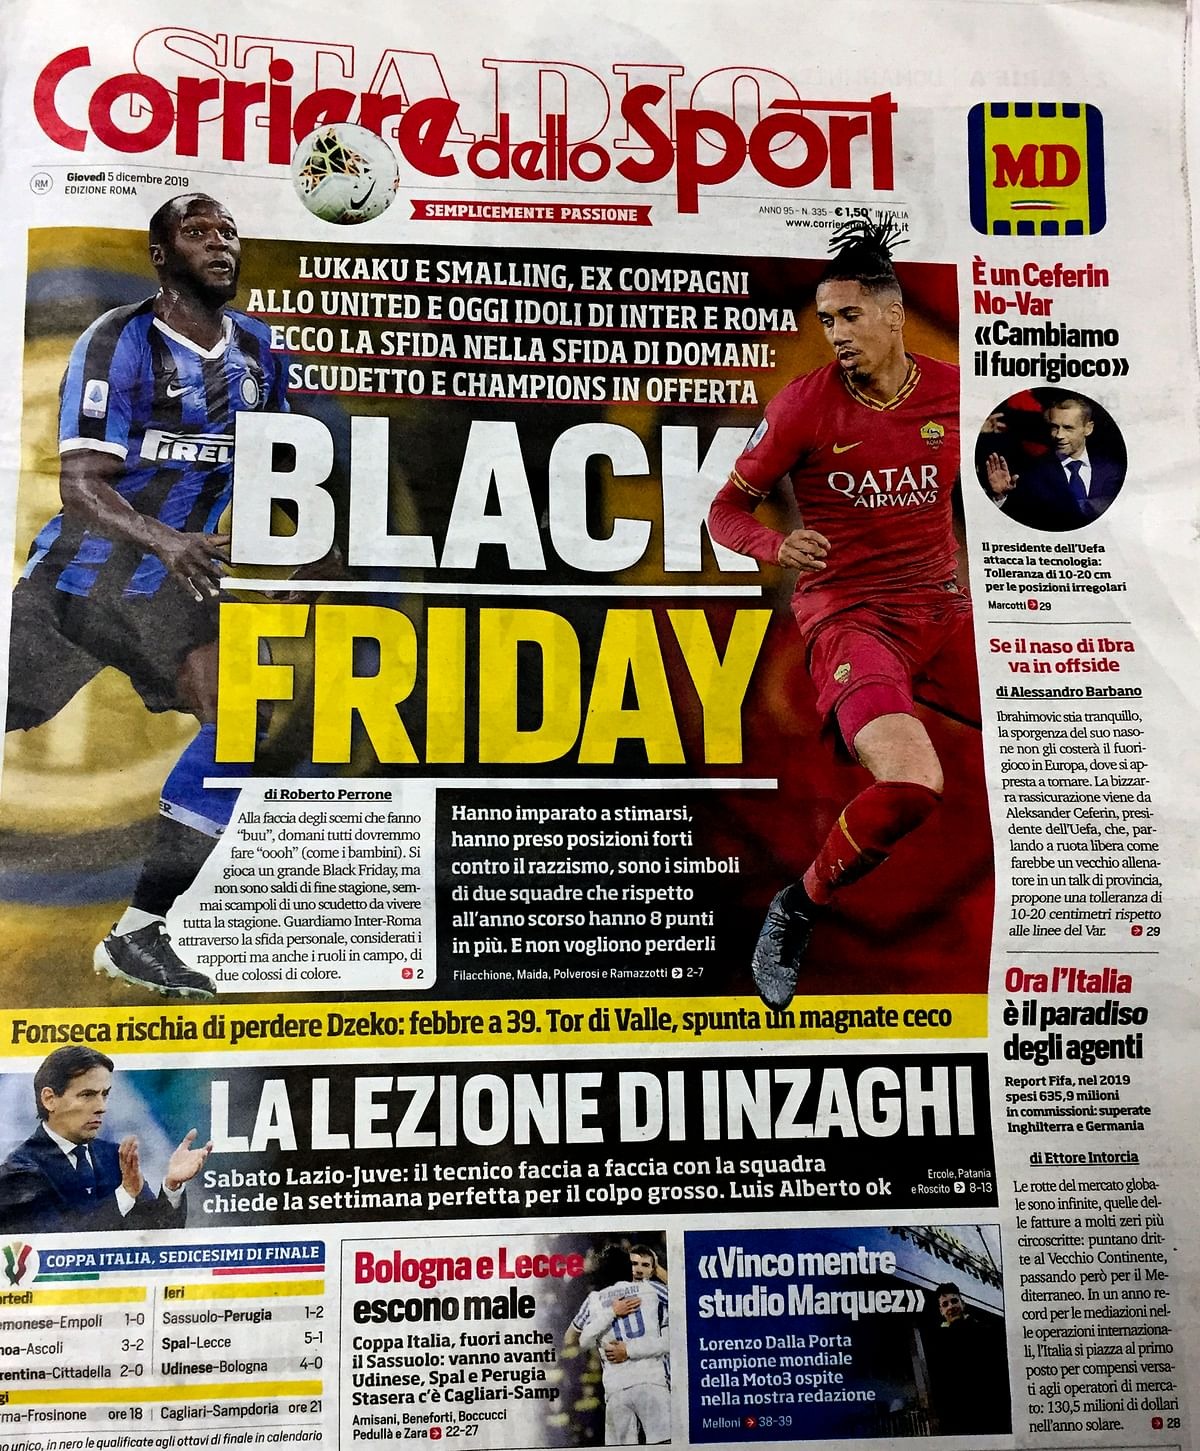 Italian Sports Daily Banned By Teams For 'Black Friday' Headline